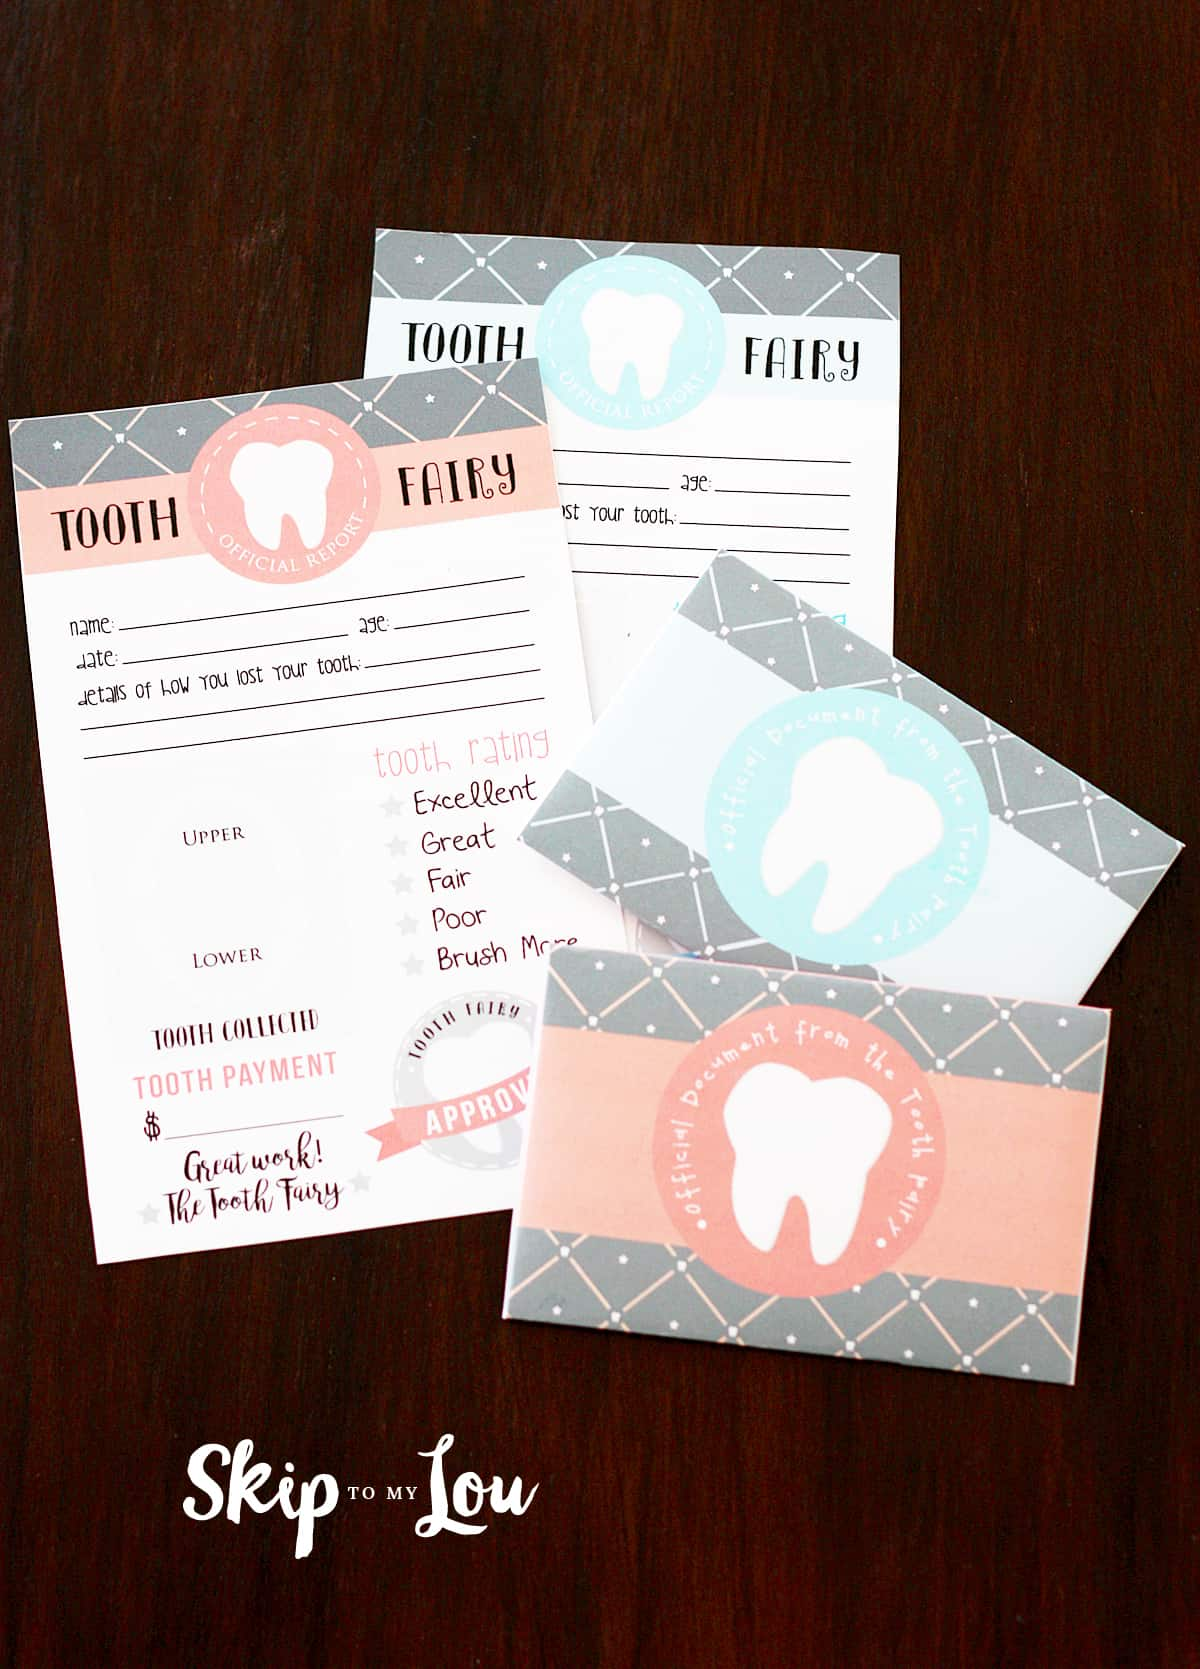 picture about Free Printable Tooth Fairy Letters called Cost-free Printable Teeth Fairy Letter with matching enevelopes